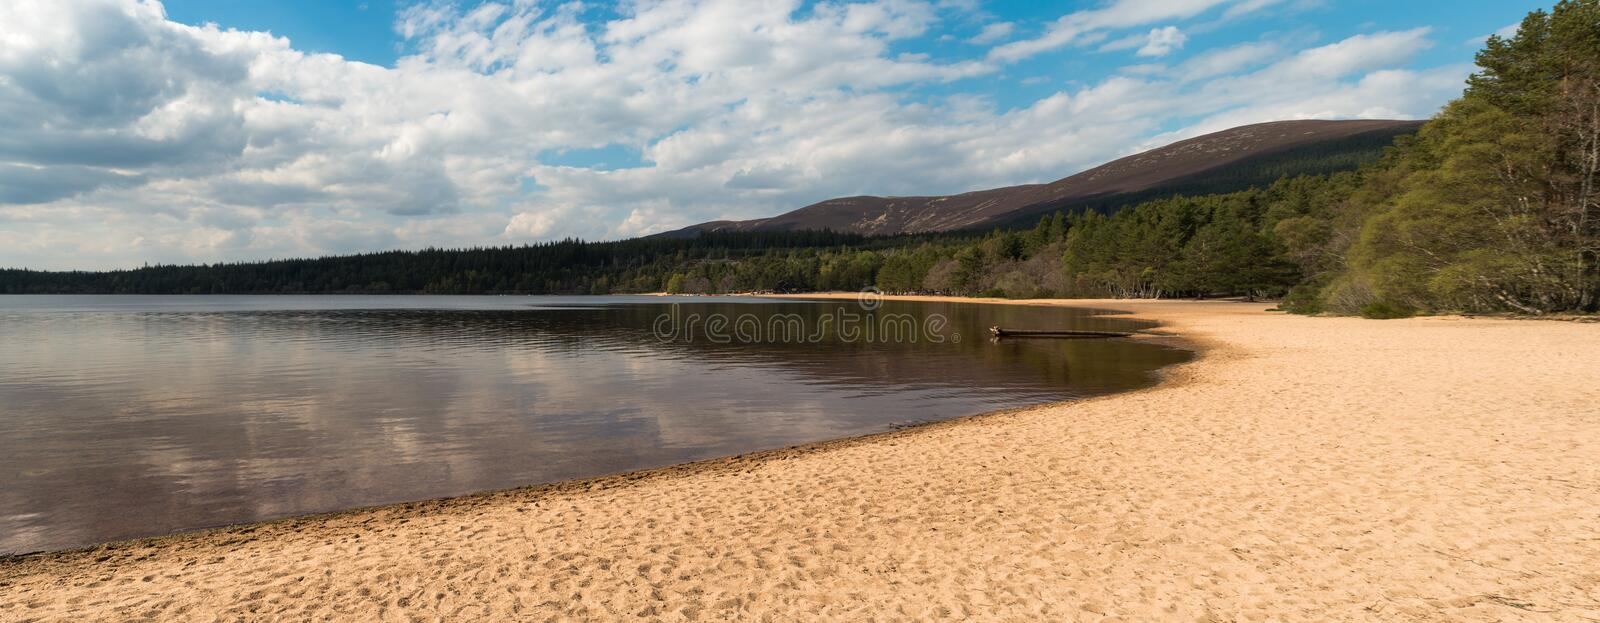 Breathtaking rural Lake view royalty free stock image